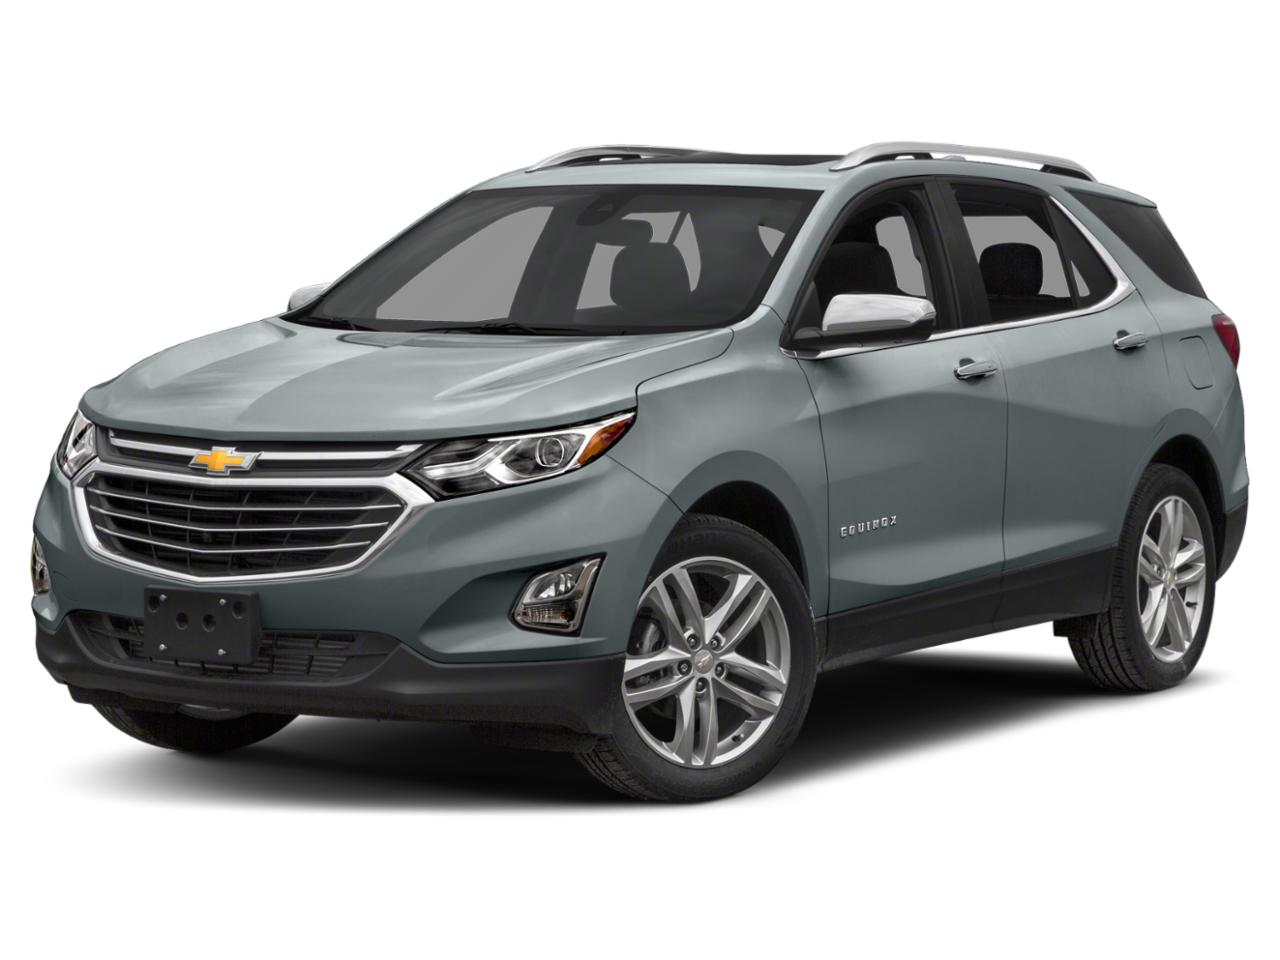 2018 Chevrolet Equinox Vehicle Photo in Anchorage, AK 99515